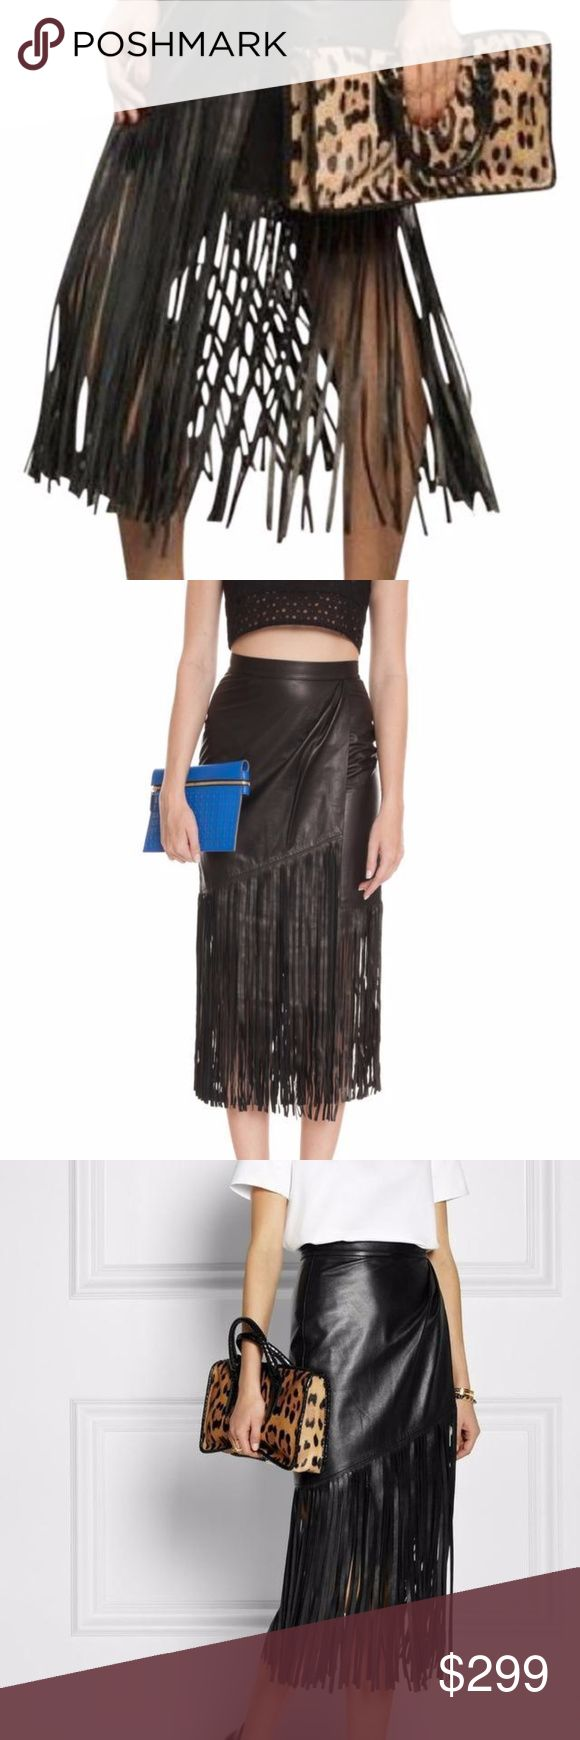 "New! Tamara Mellon Fringe Leather Skirt New Tamara Mellon Black Fringe Leather Skirt. Retail $895.00. Size: 10. Color: Black. A butter-soft leather skirt is a luxe option for day or night. The fringed hem lends this flattering wrap-effect style fluid movement. Keep it in focus with a basic white top and simple sandals. Black leather. Wrap-effect front, fringed hem, fully lined. Concealed hook and zip fastening at back. 29"" waist, 40"" hip, 20"" length without the fringes.  100% leather (Lamb)…"